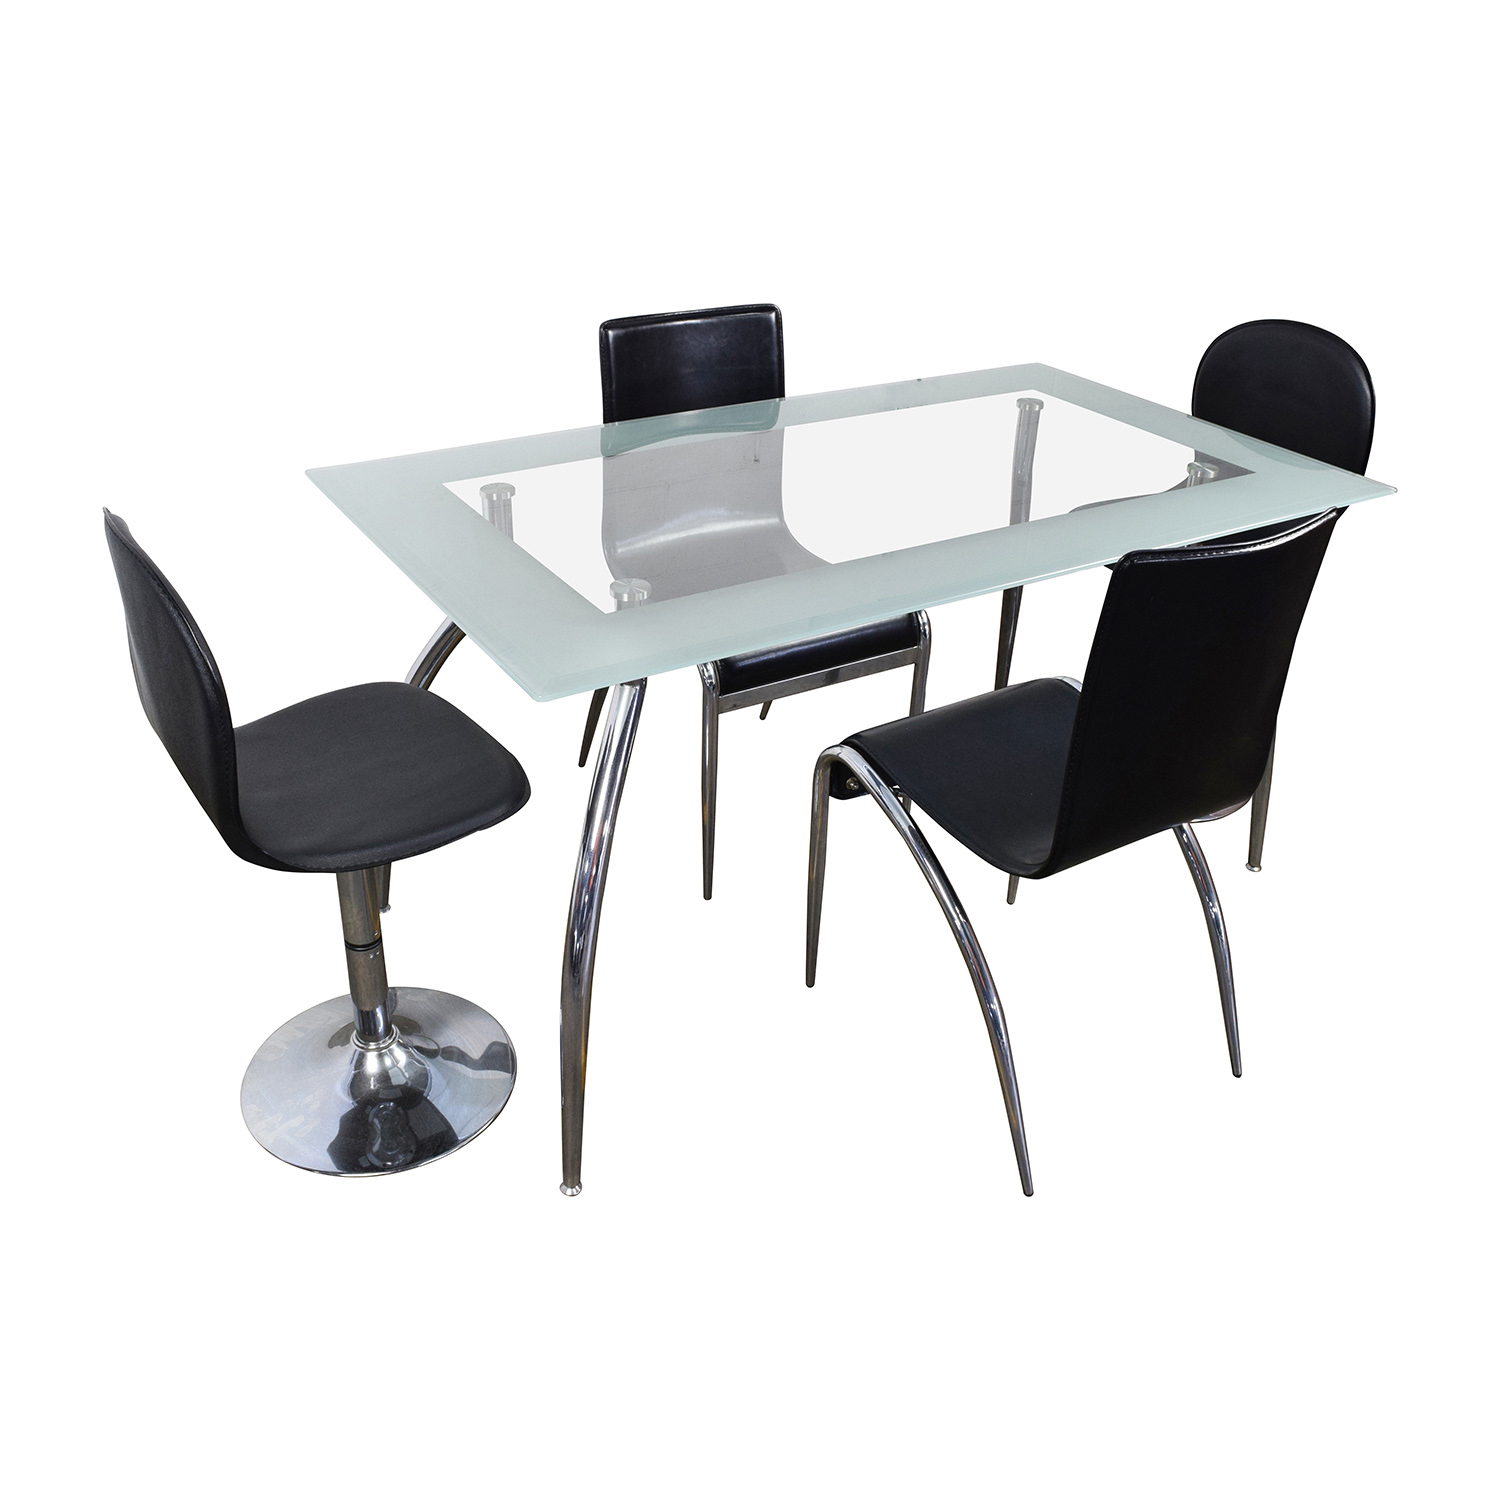 buy The Door Store Rectangular Glass Table with Four Leather Chairs The door store Tables